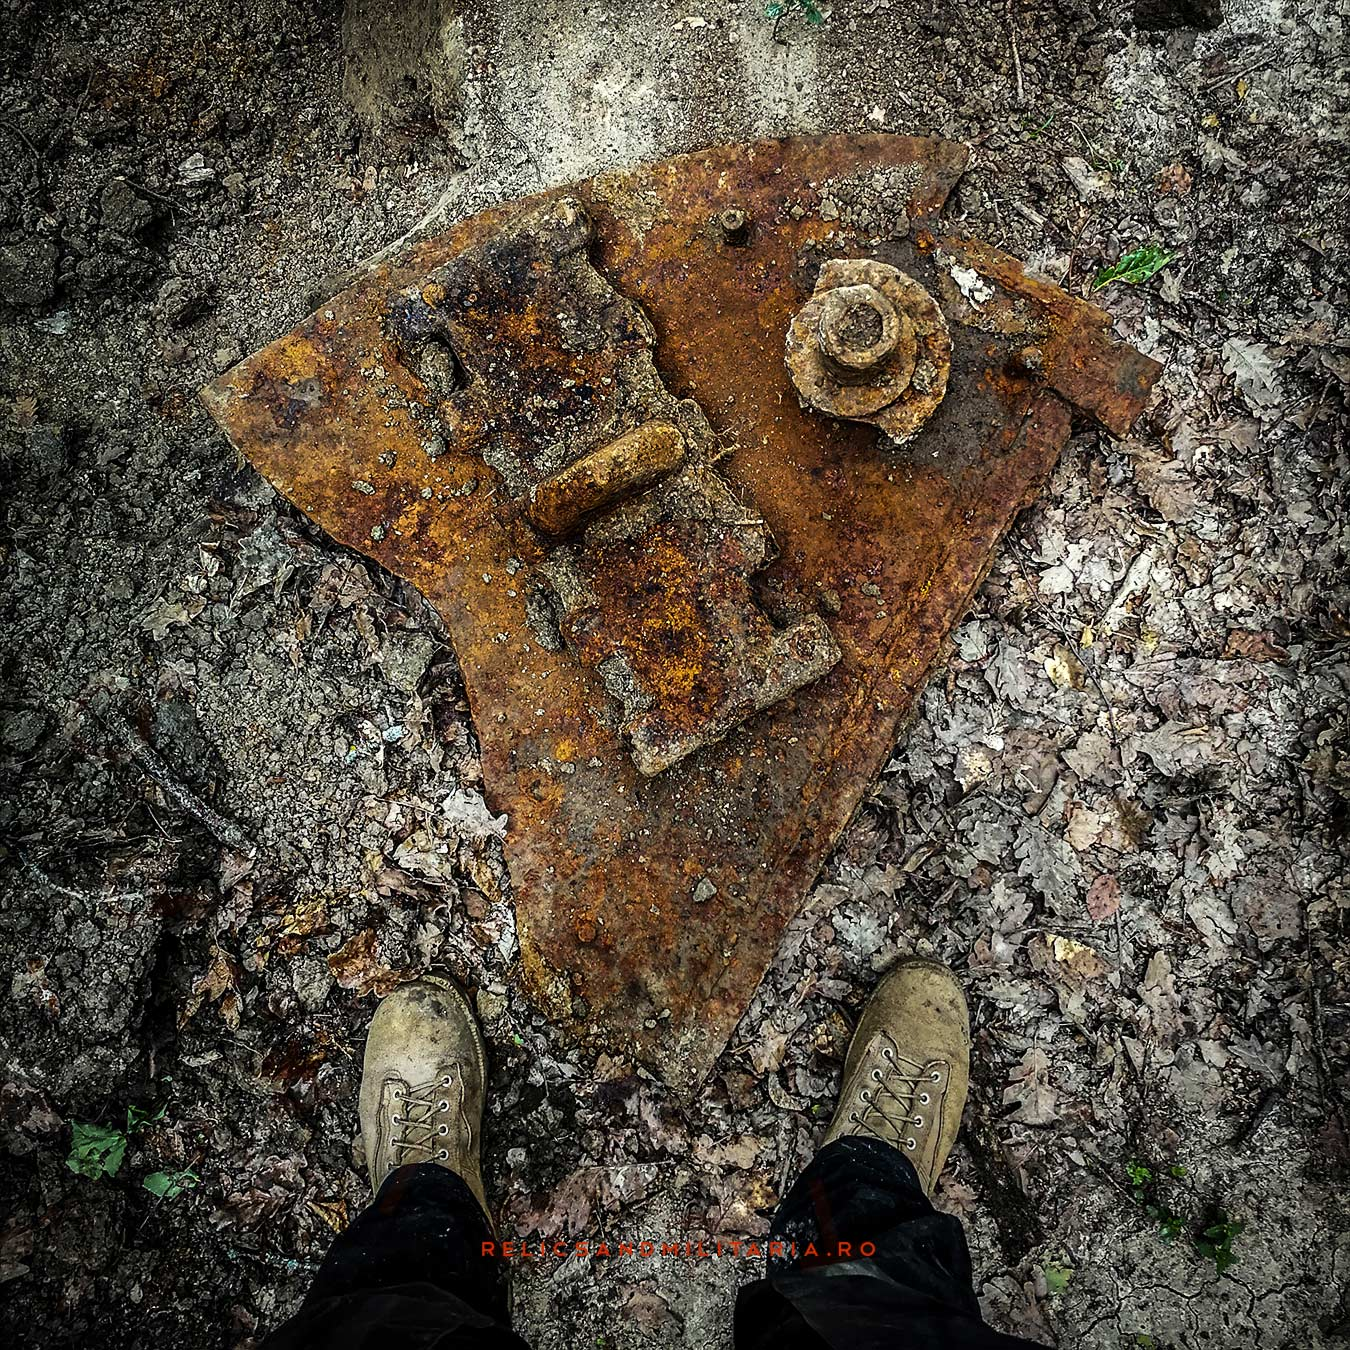 T-34 Russian Tank armour and track link Metal detecting in Romania ww2 battlefields